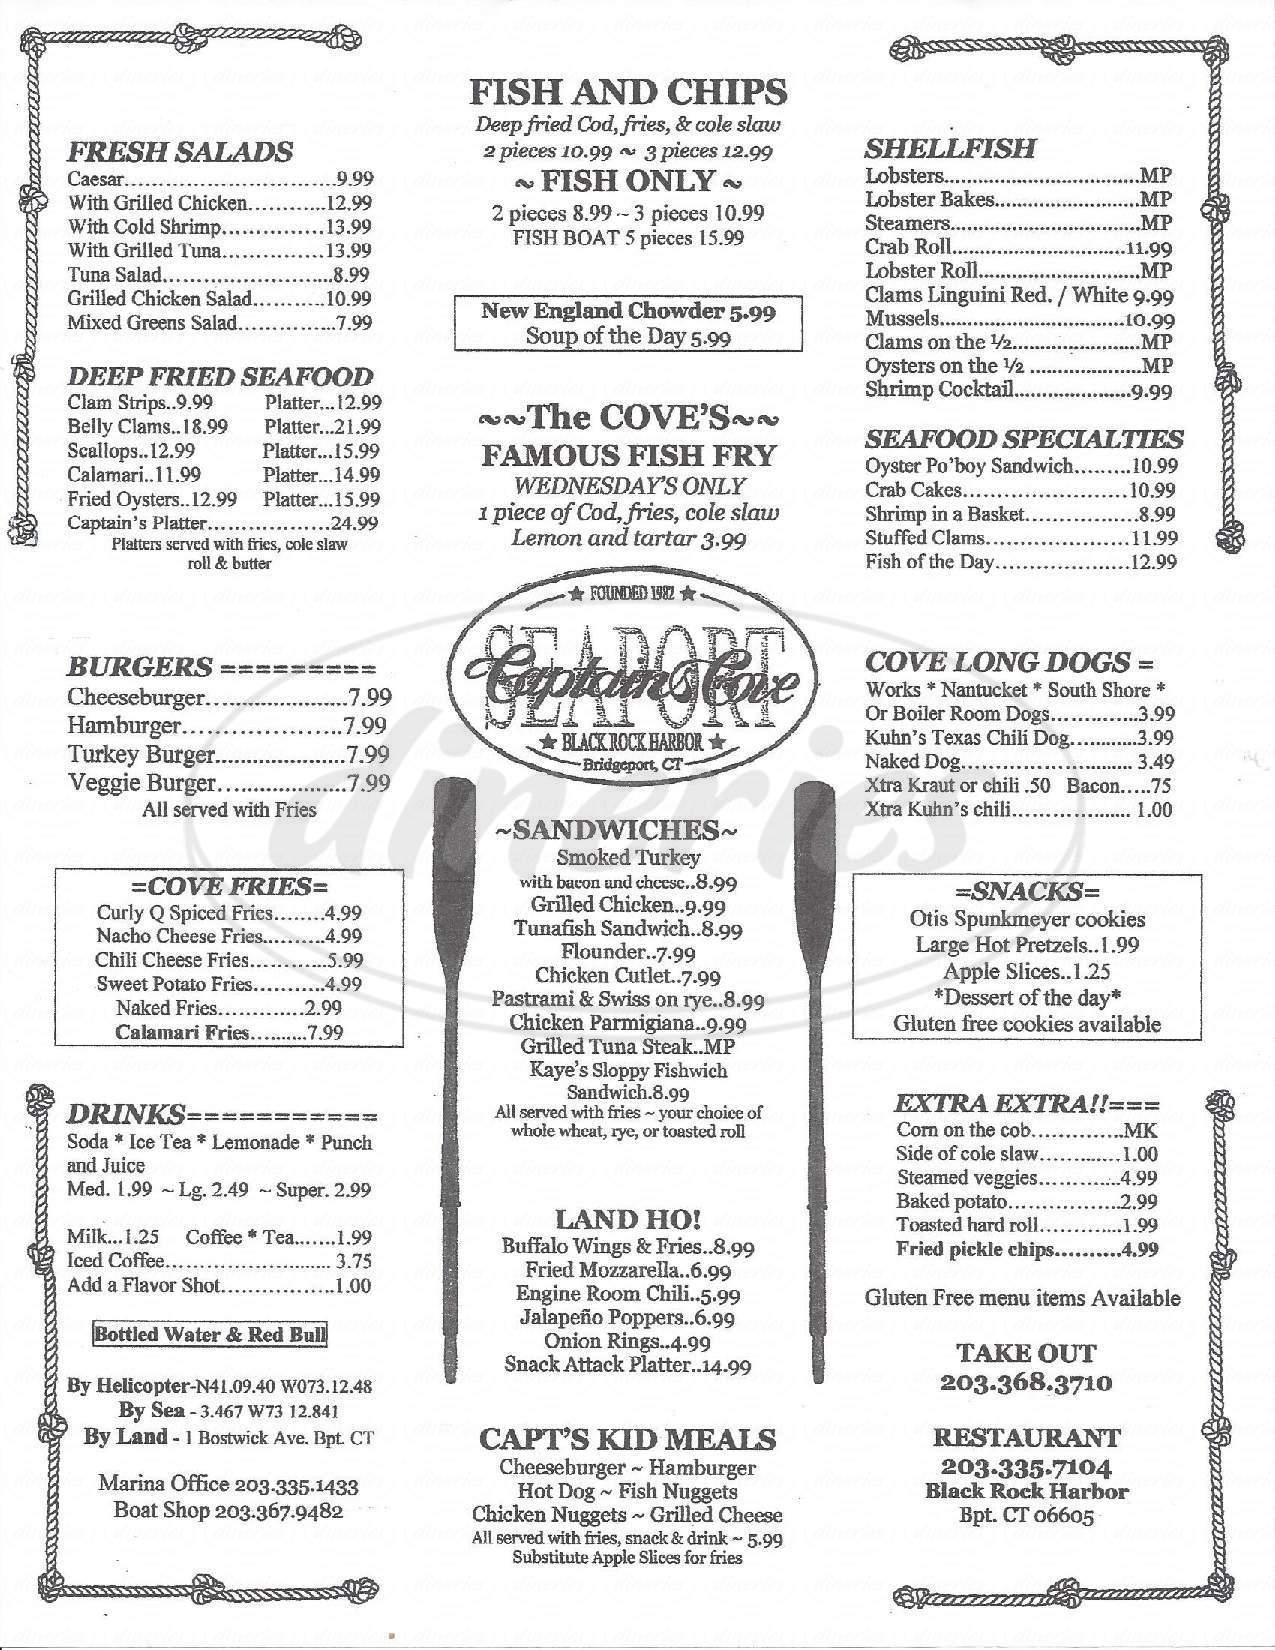 menu for Captain's Cove Seaport